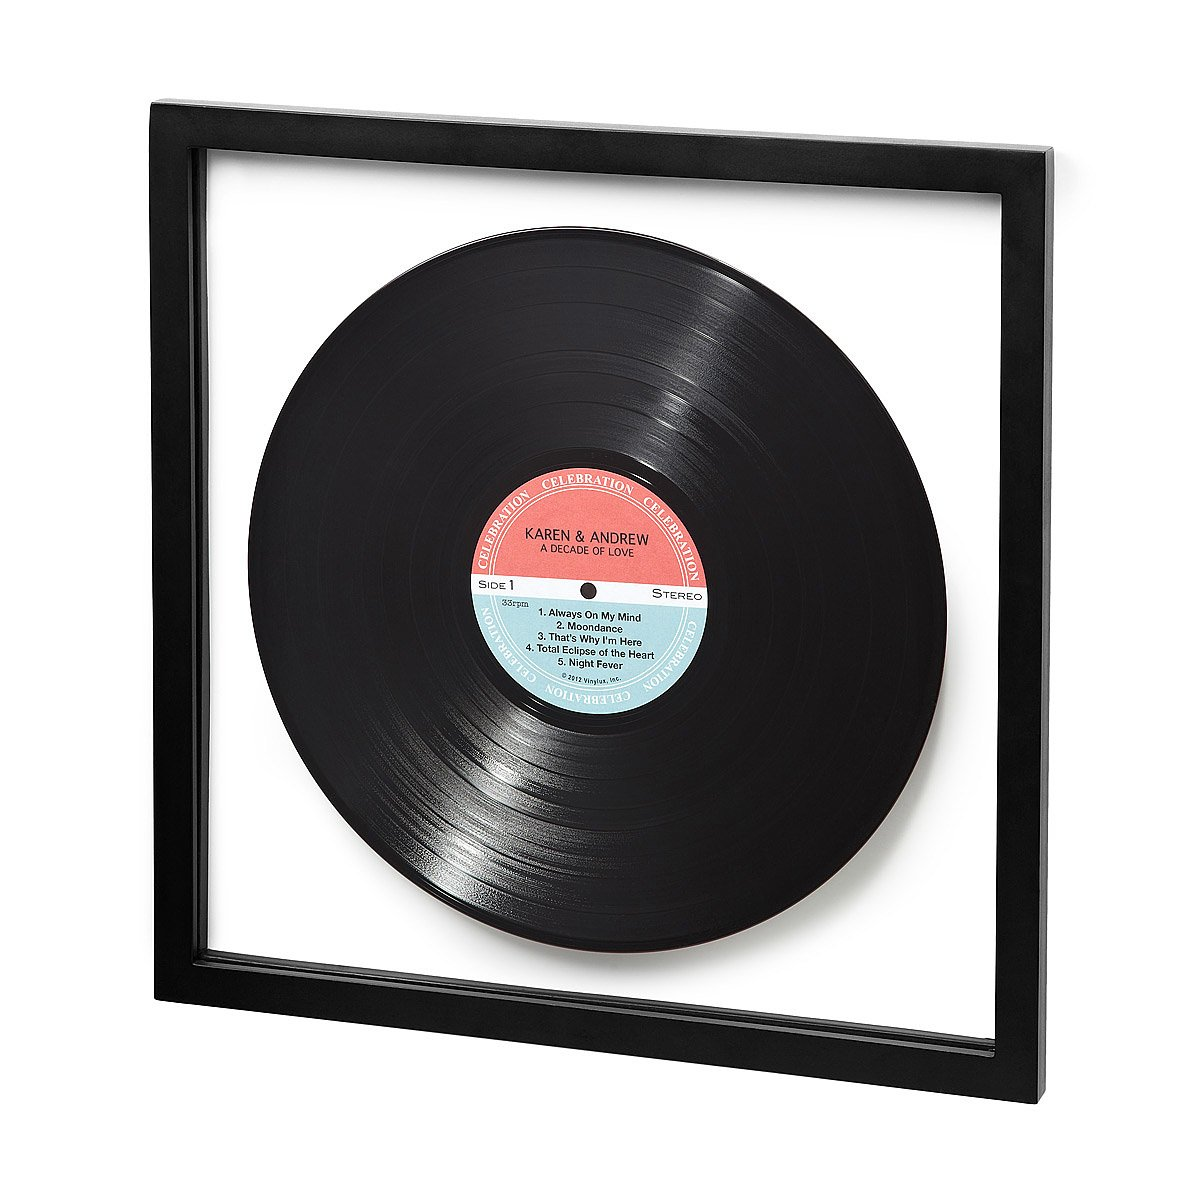 personalized lp record cool wedding gifts Personalized LP Record 1 thumbnail